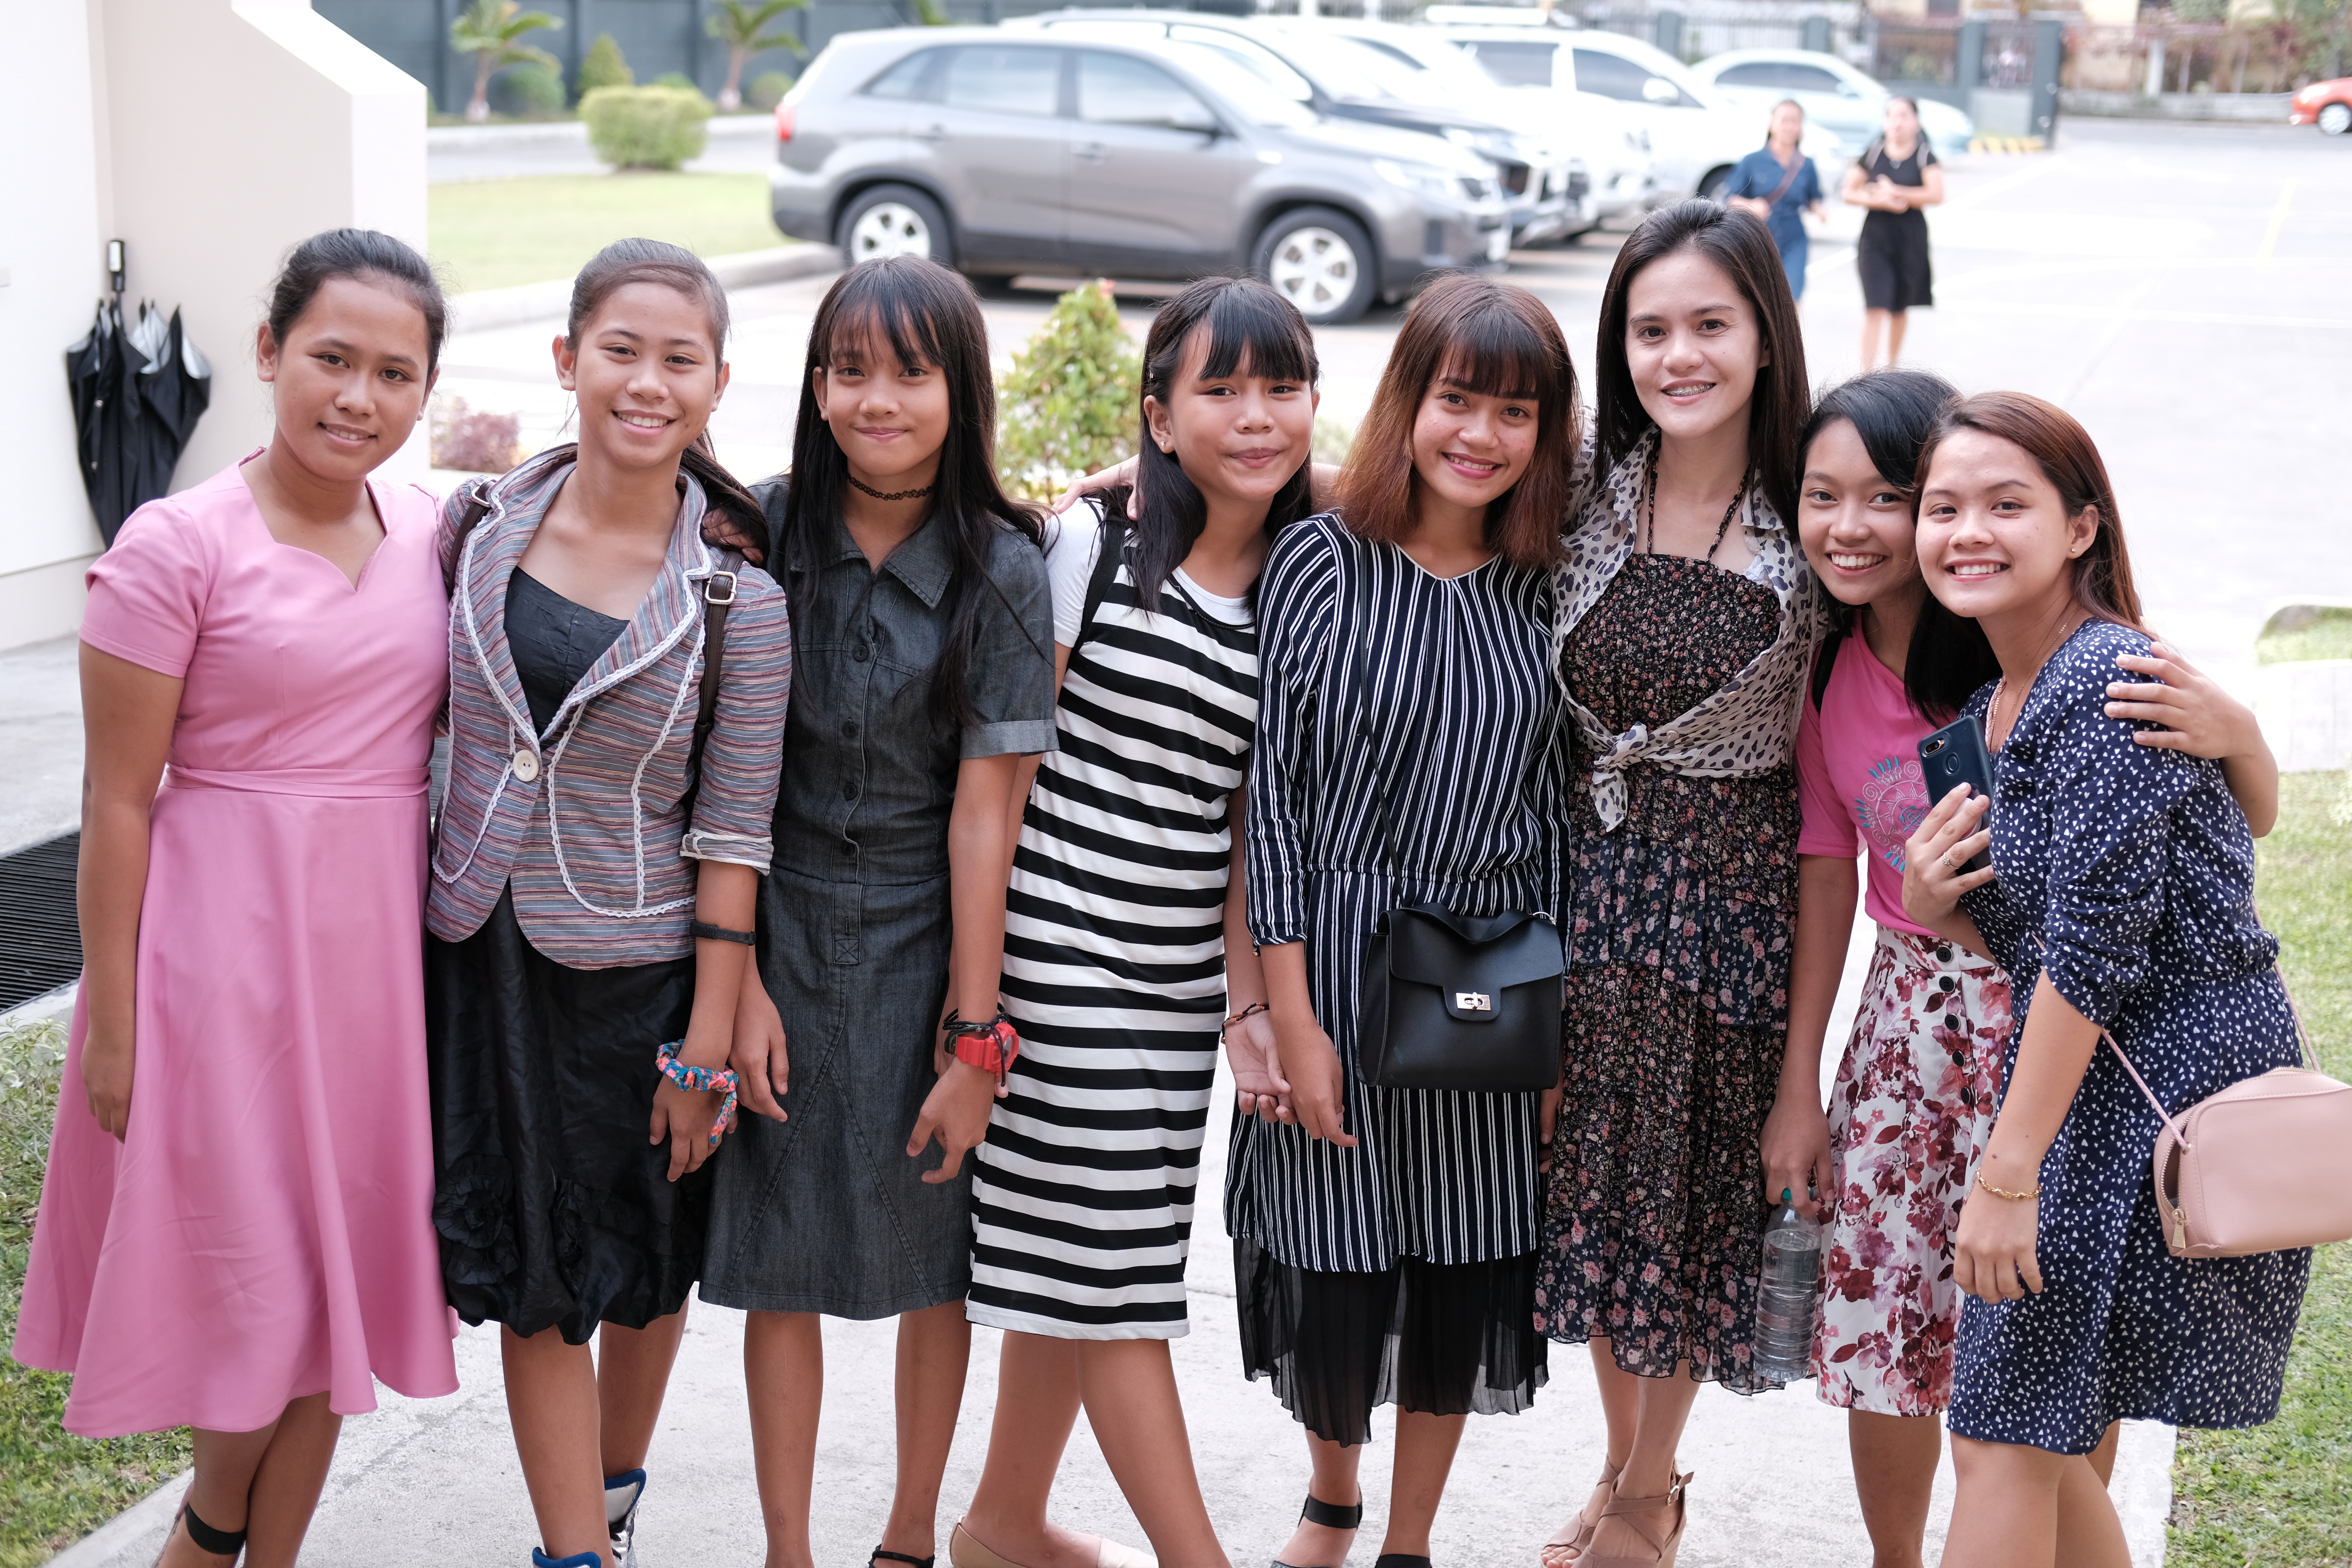 Youth in Iloilo, Philippines attend a devotional with Elder Renlund on May 25.